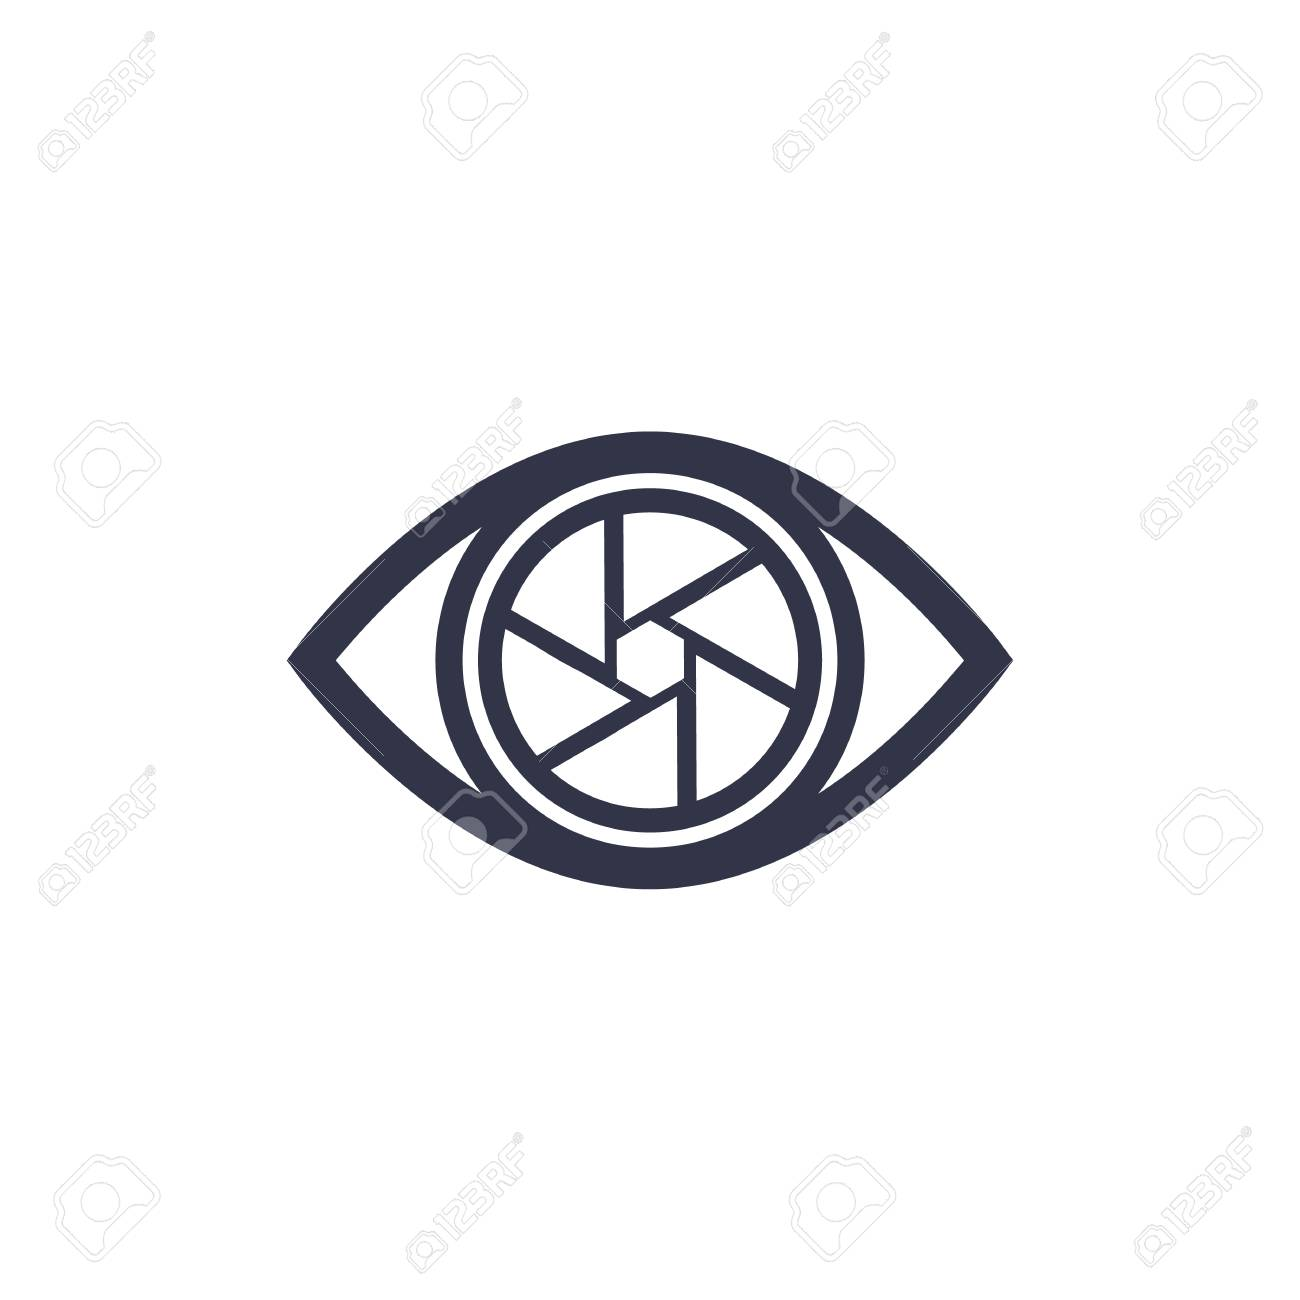 Eye with aperture icon - 91690022